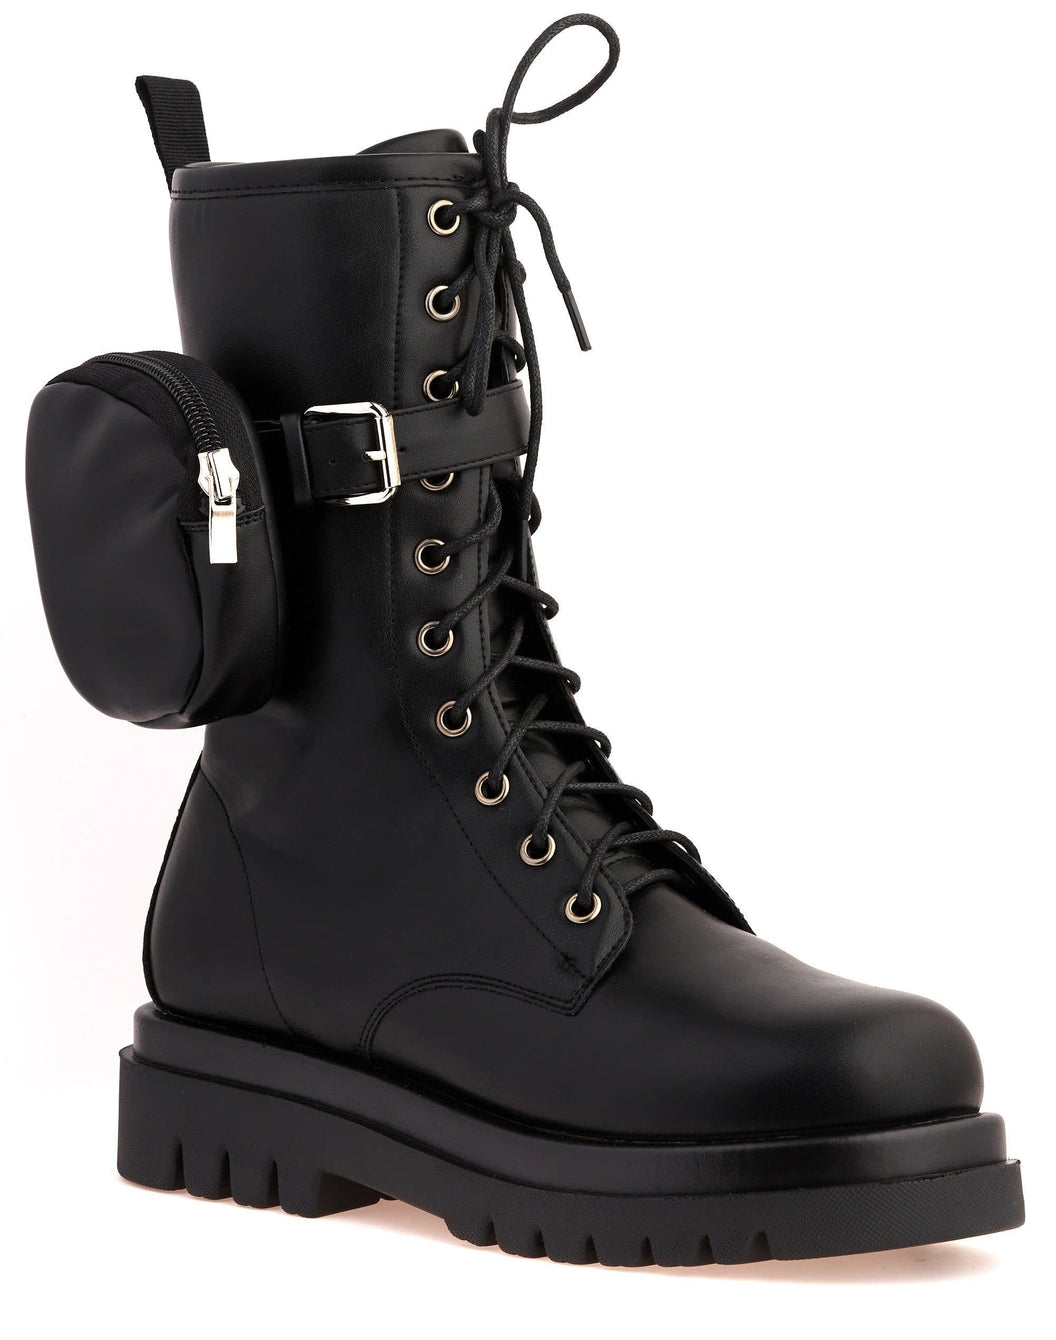 Icon Side Zip Pocket Lace Up Boot in Black Matt